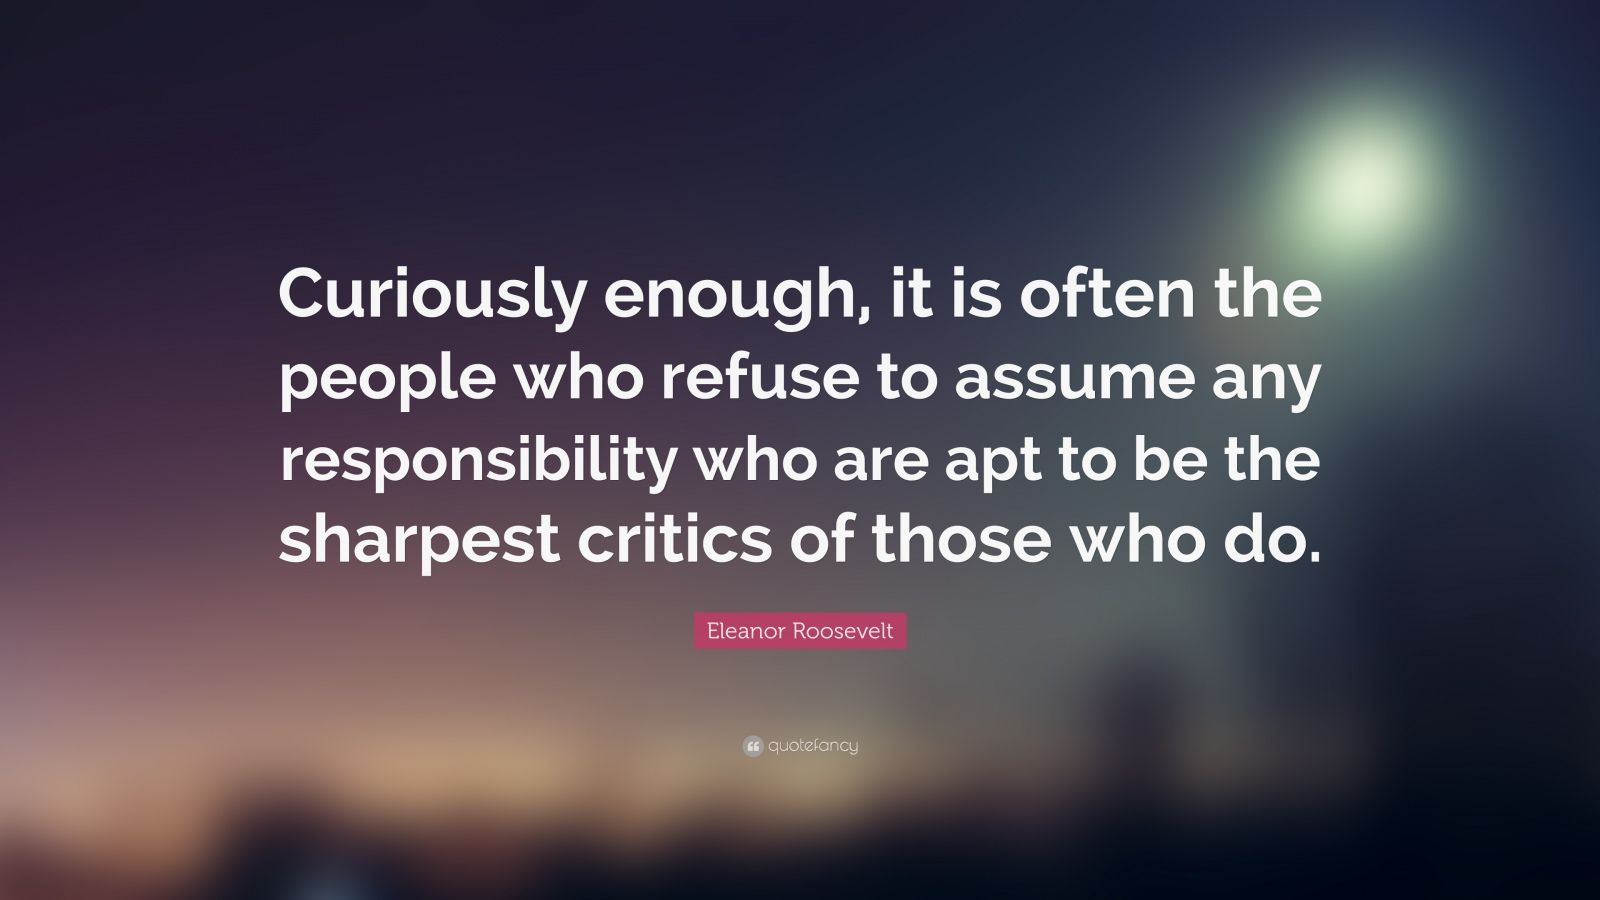 """Eleanor Roosevelt Quote: """"Curiously enough, it is often the people who refuse to assume any responsibility who are apt to be the sharpest critics of those who do."""""""